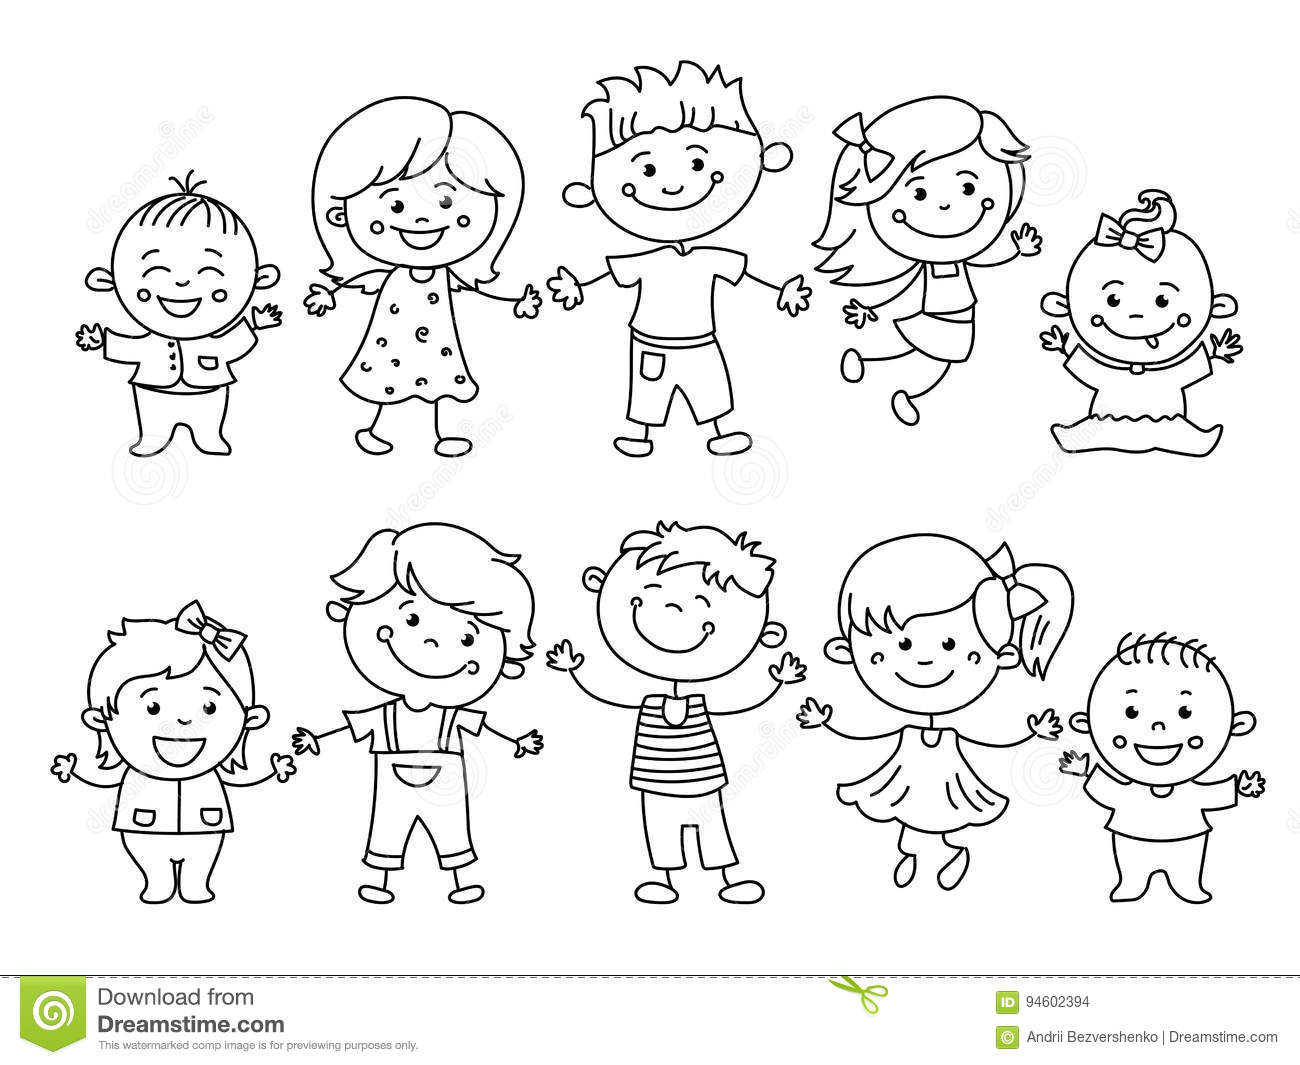 Cheerful children painted by colorful pencils with kids elements, drawings, paintings. Girls and boys are on the white